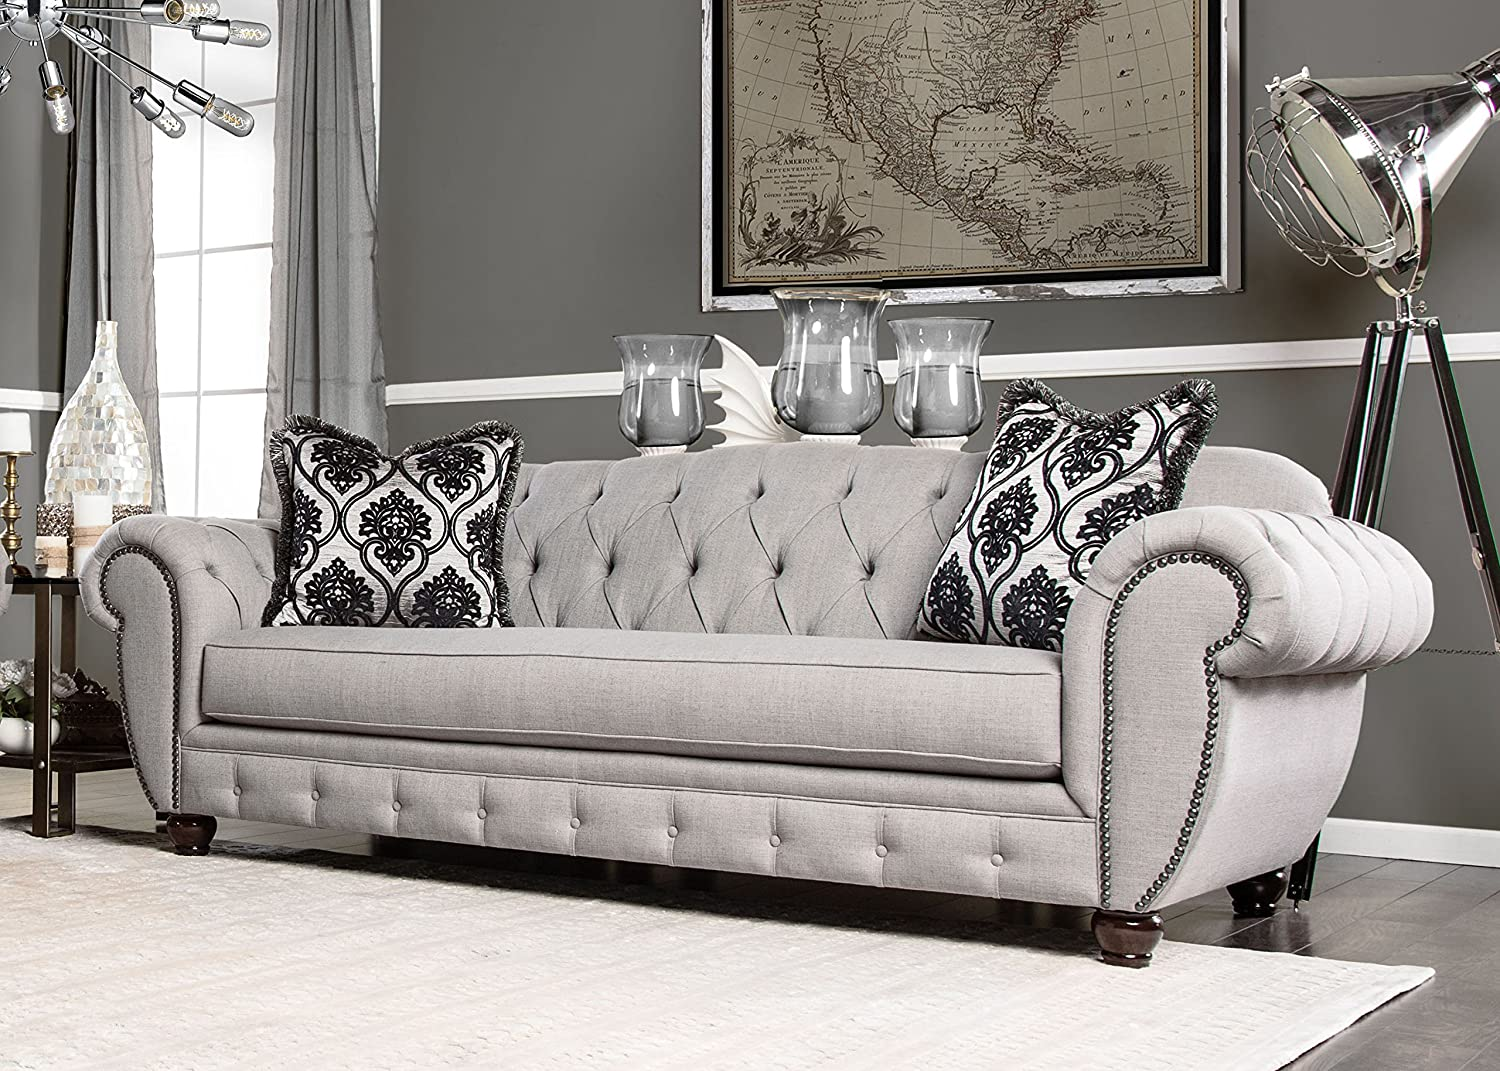 Furniture of America Bowie Modern Victorian Tufted Sofa, Gray